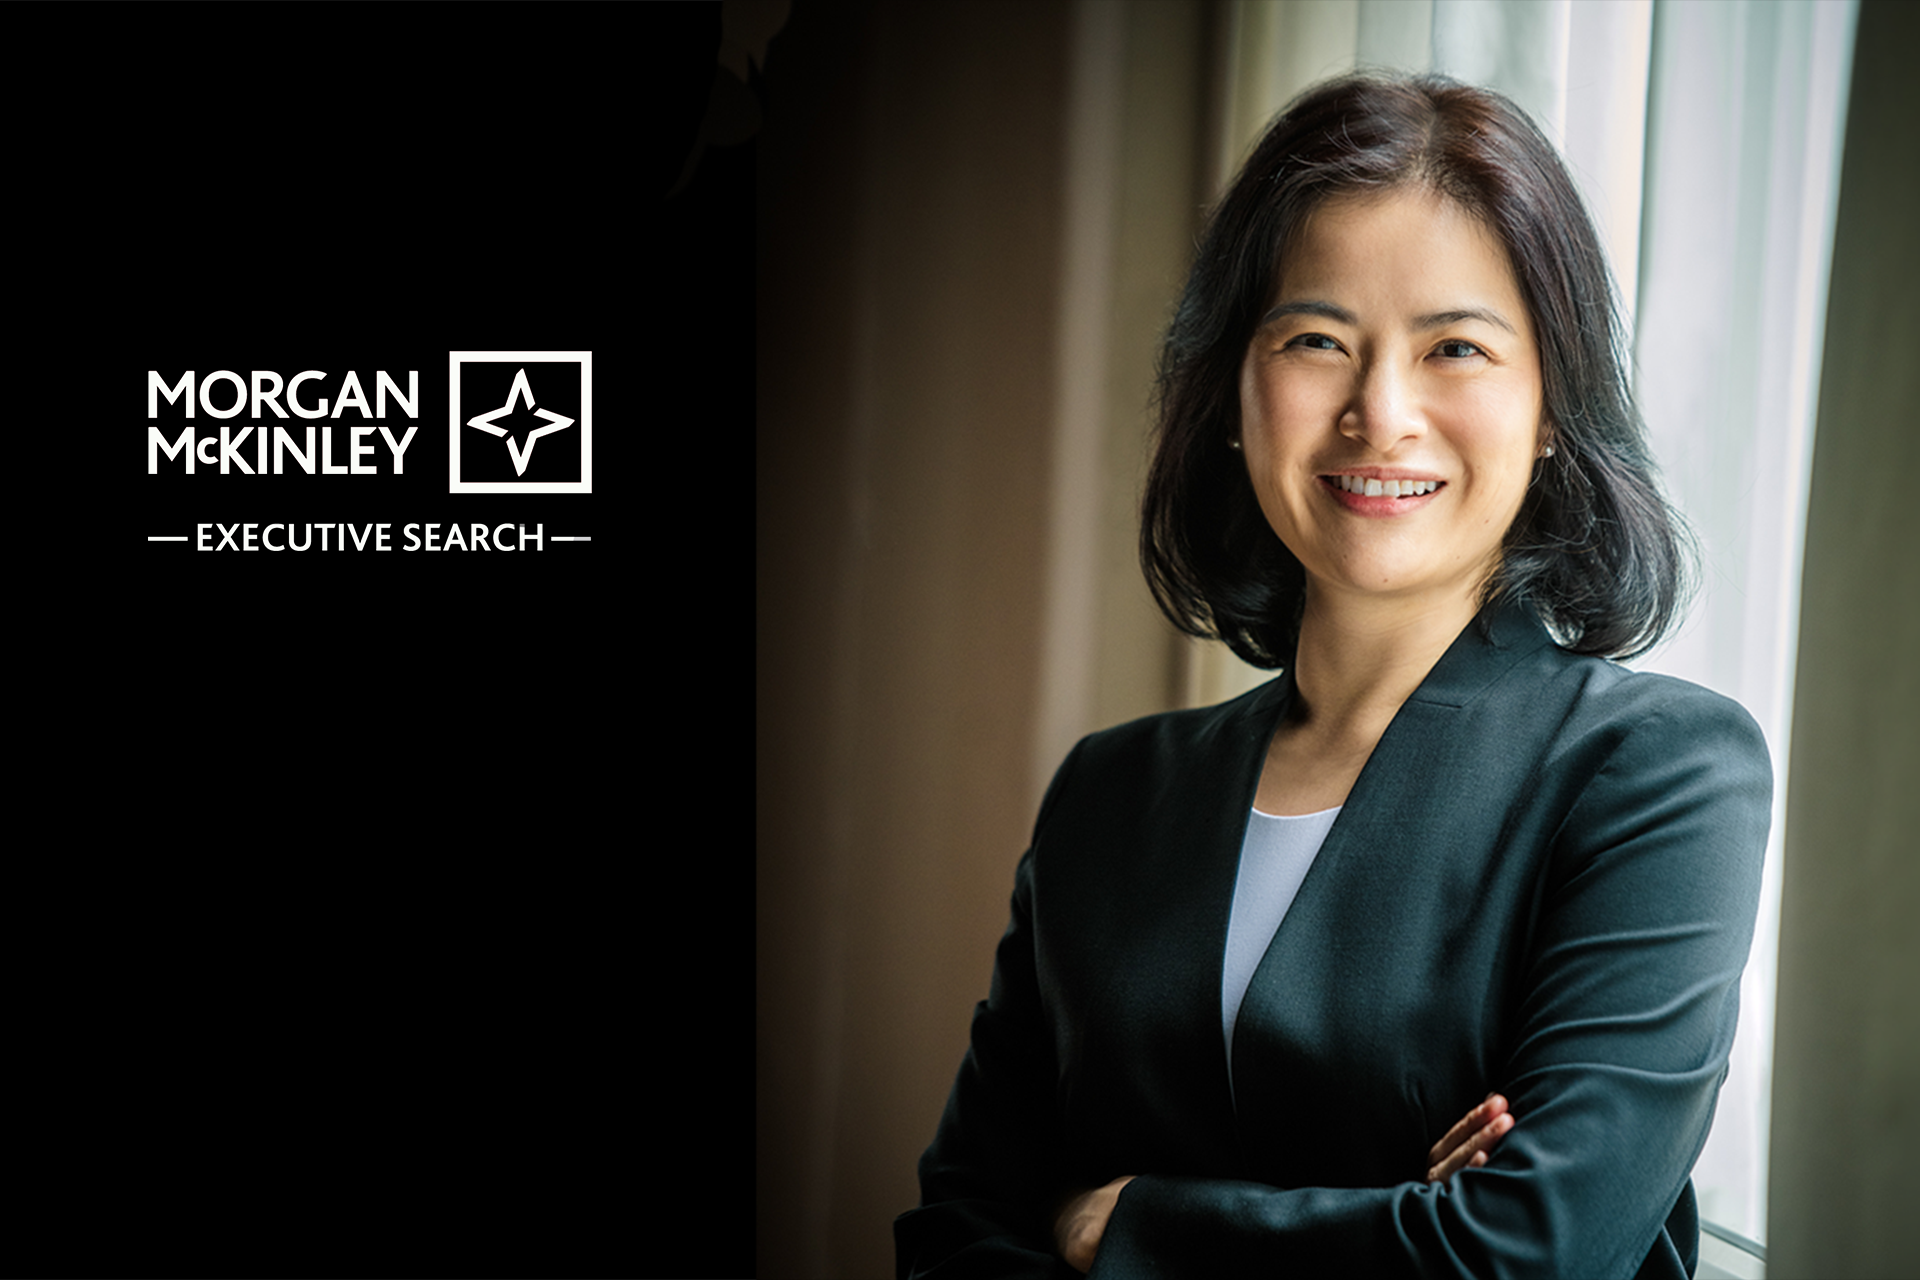 Introducing_Morgan_McKinley_Executive_Search_Singapore